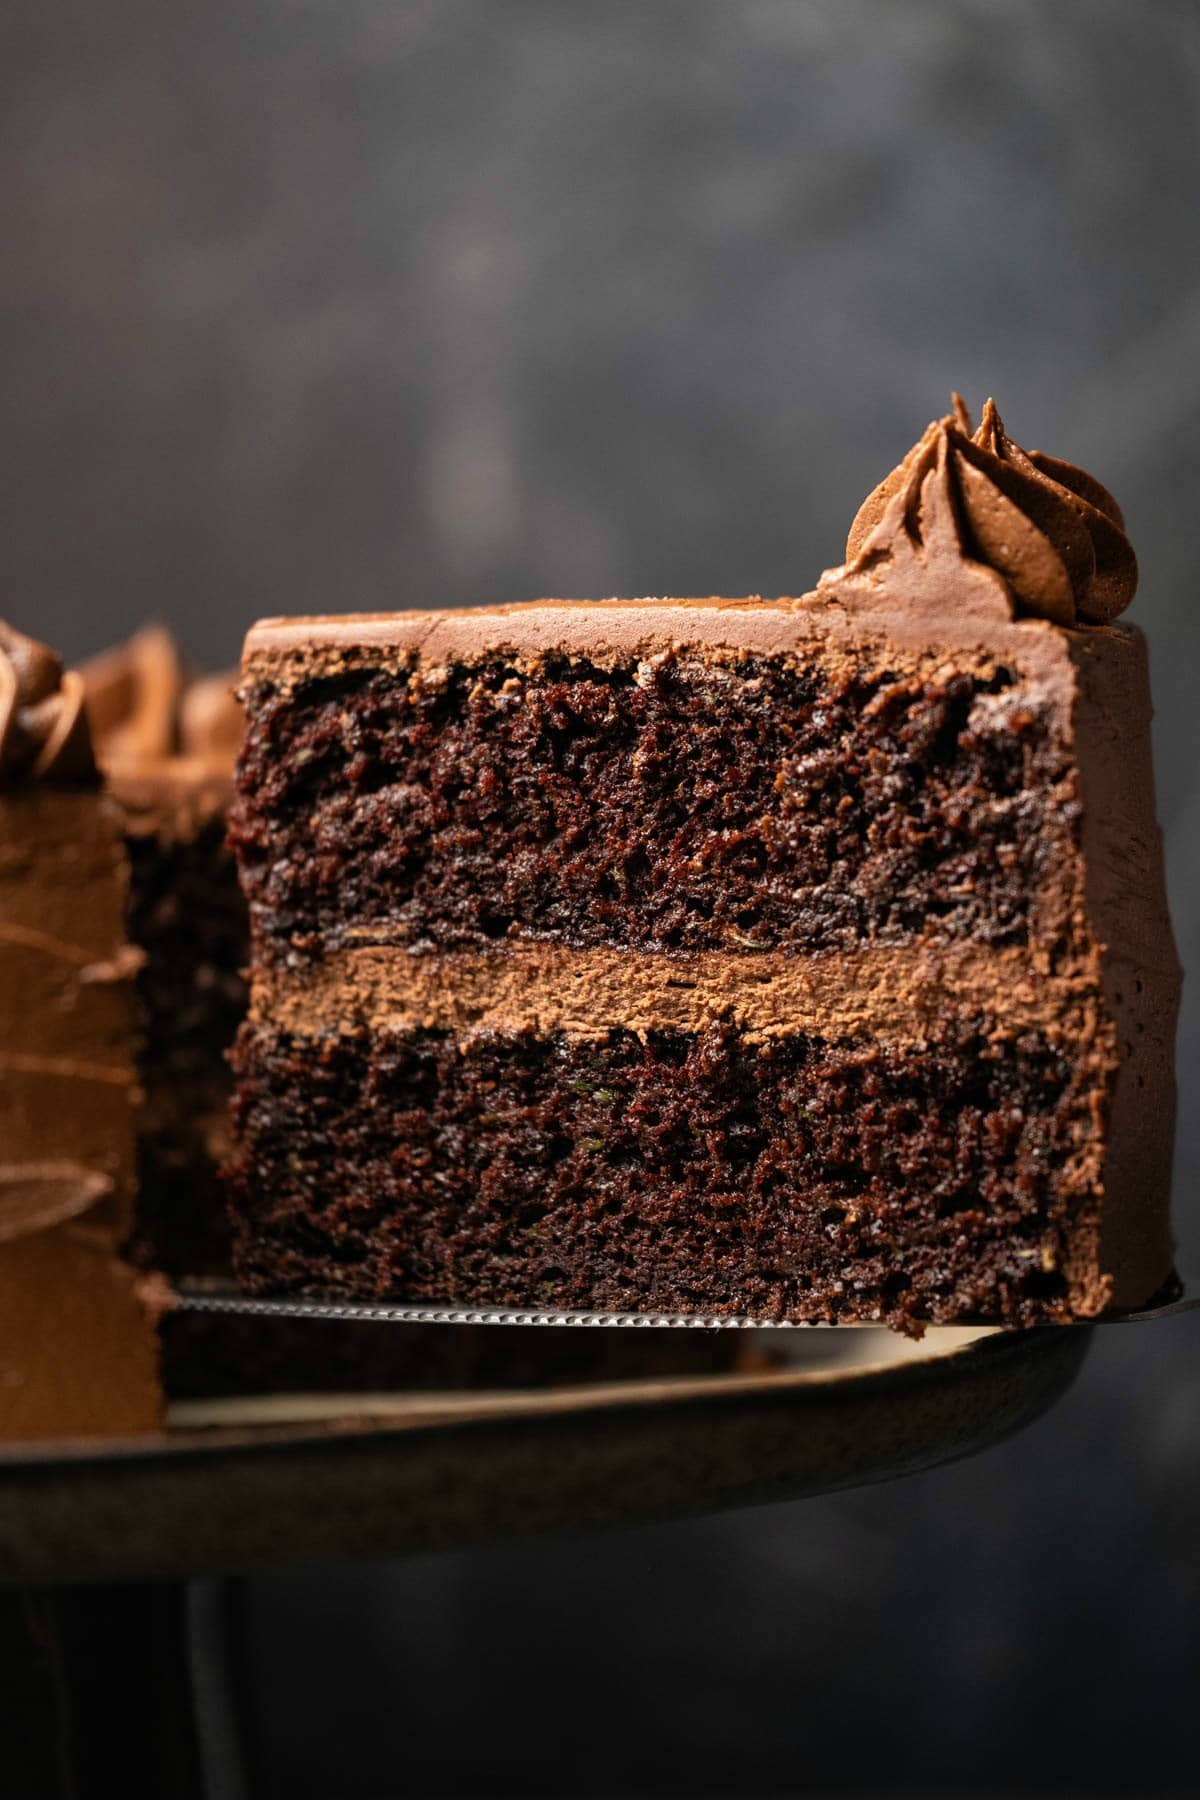 Chocolate zucchini cake on a cake stand with one slice cut and ready to serve on a cake lifter.